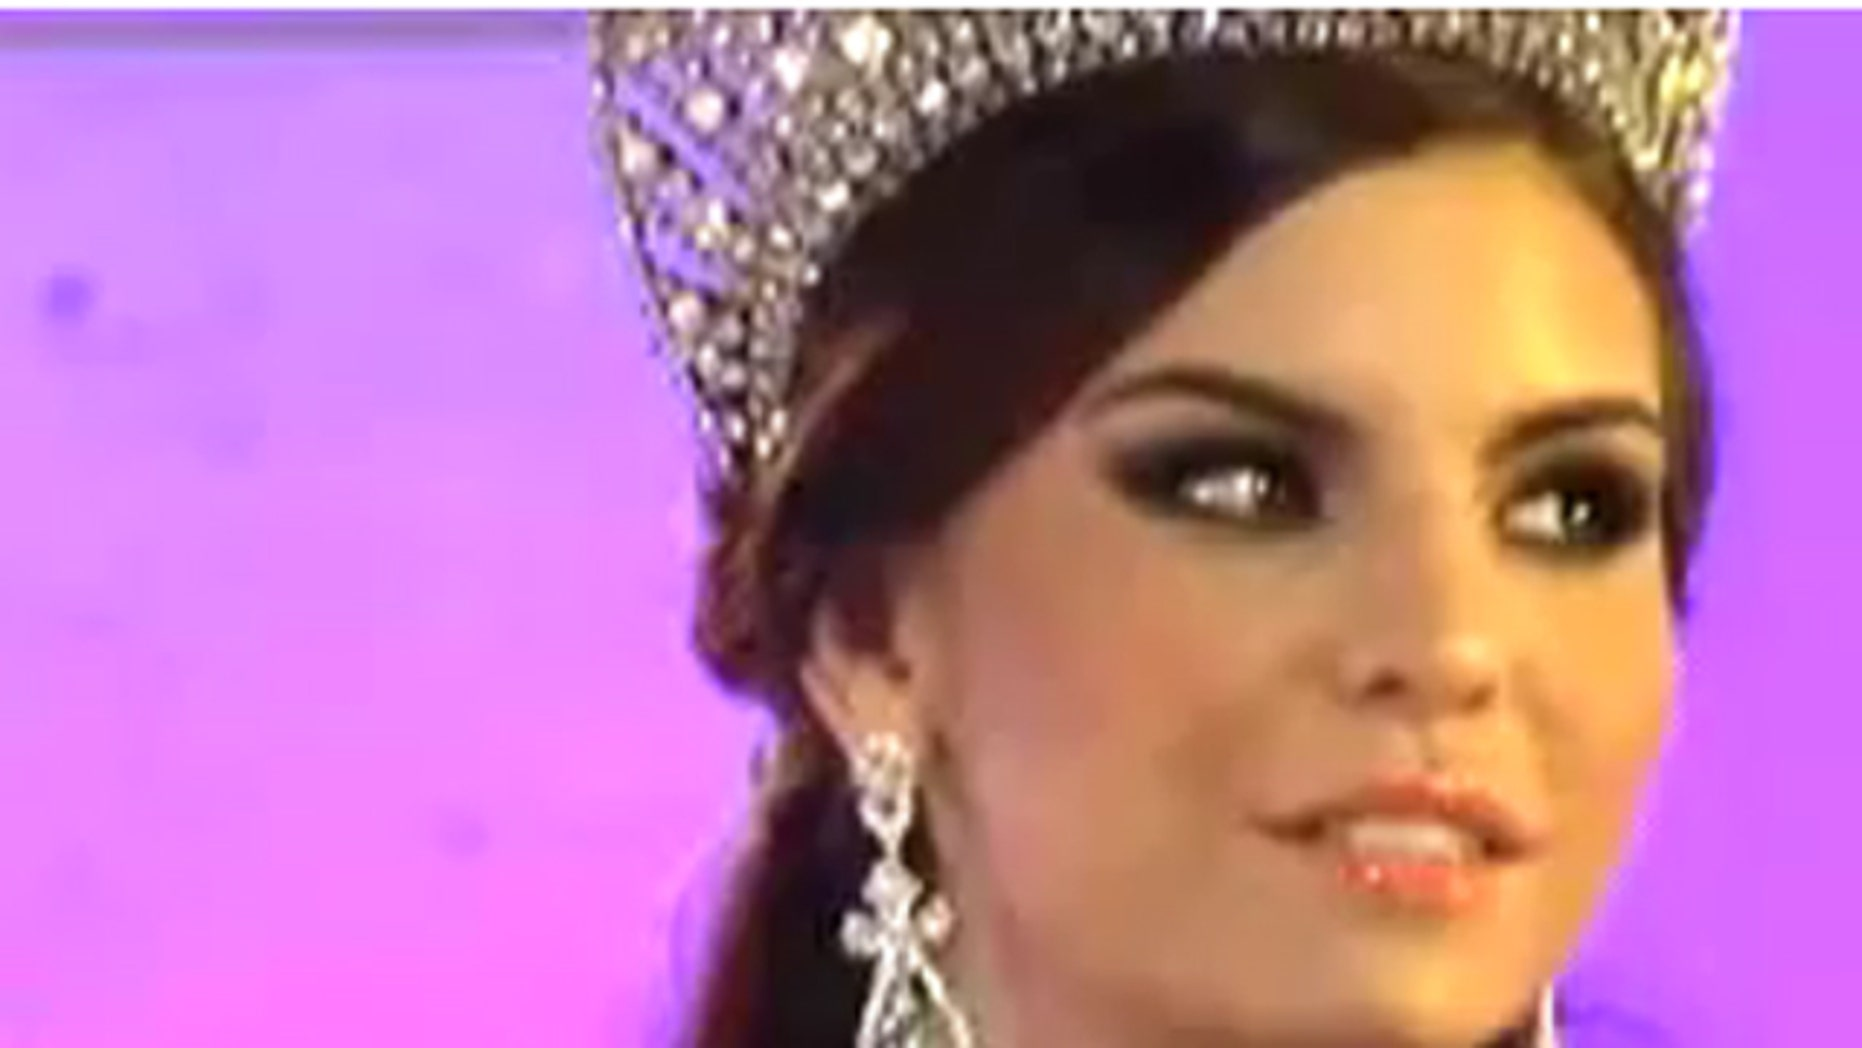 Cynthia de la Vega, first runner up for Nuestra Belleza Mexico, claims she was stripped of her title after gaining a mere six pounds.